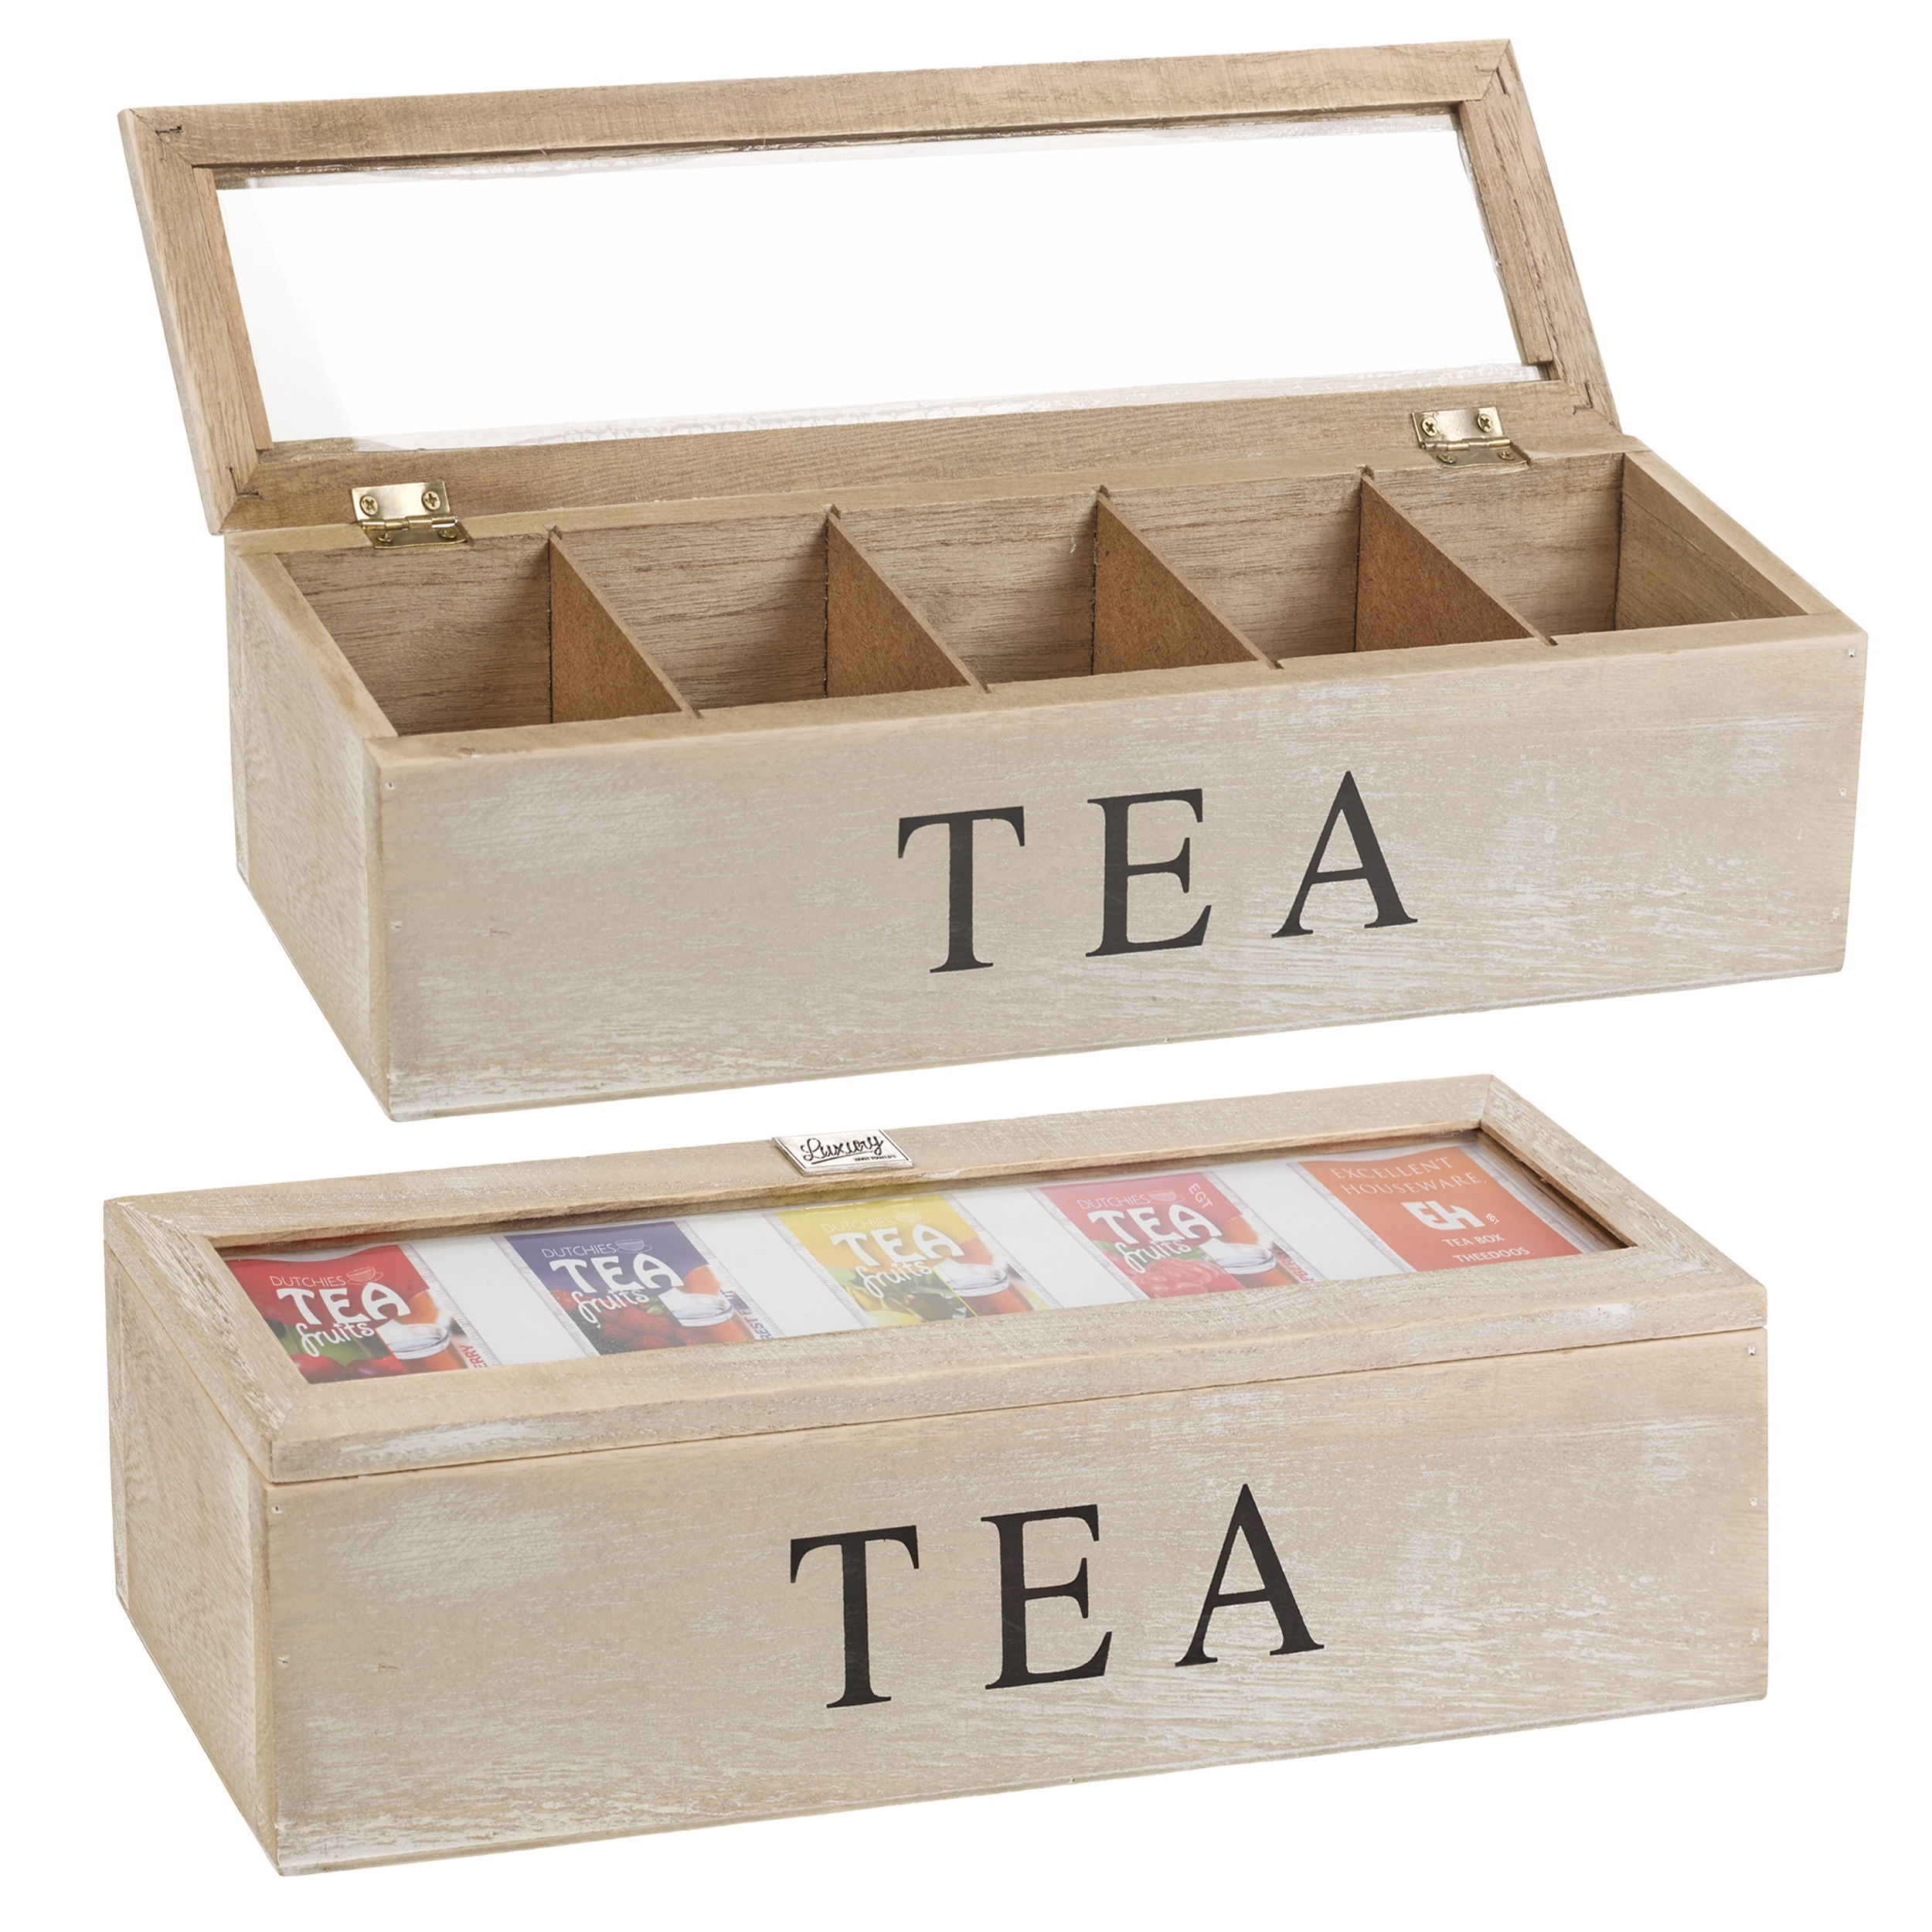 Distressed Wooden Tea Box 5 Sections Compartments ...